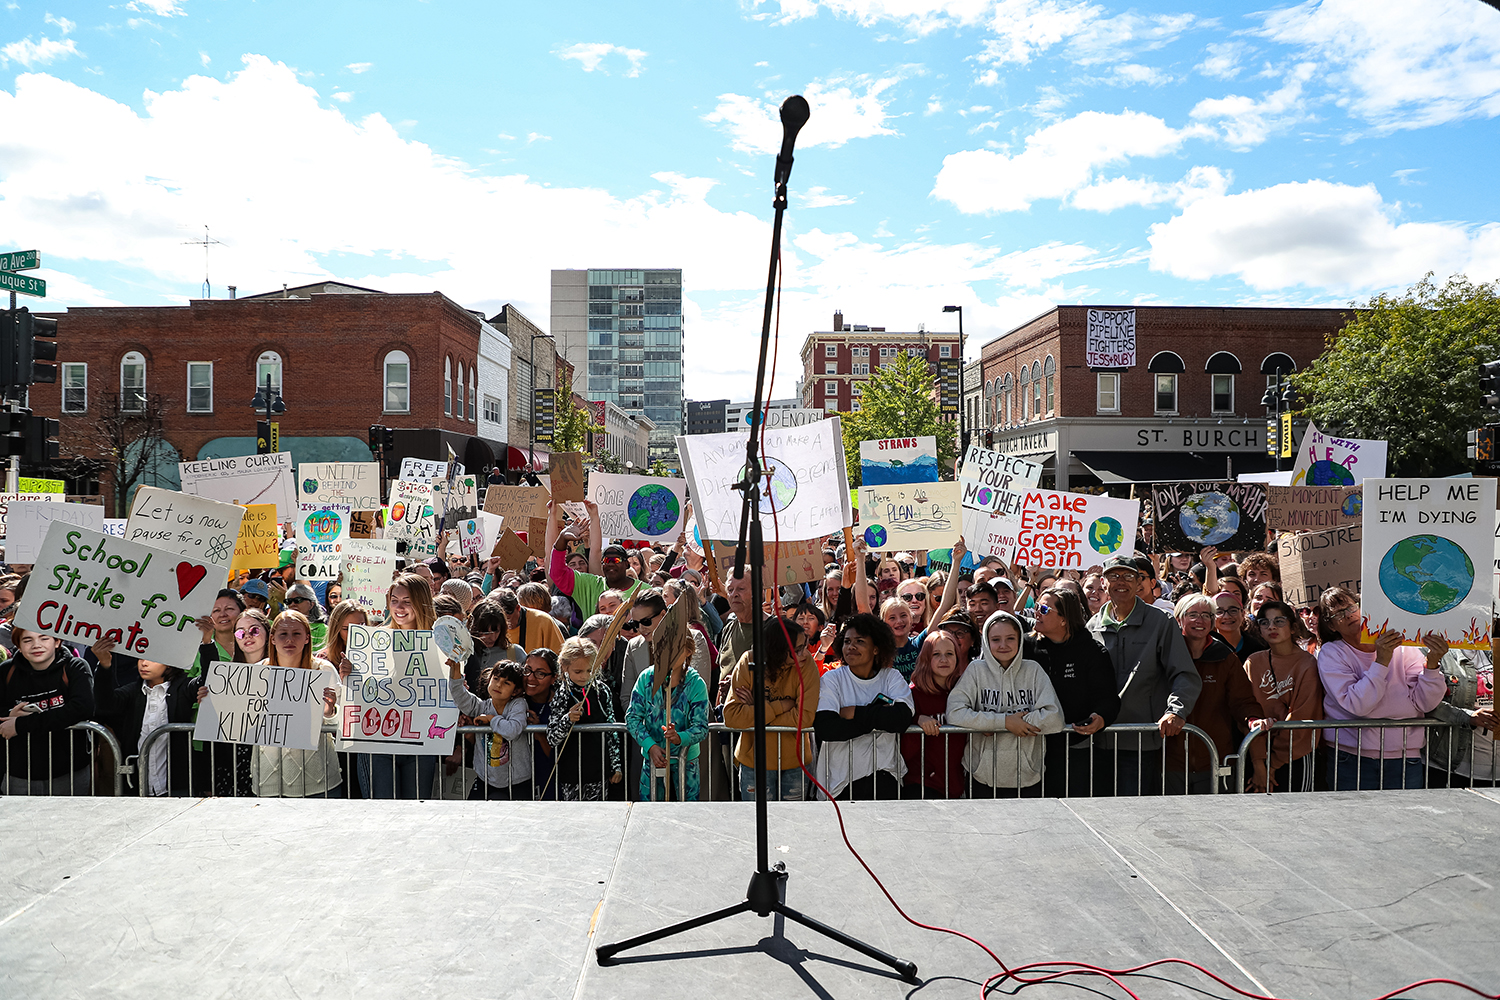 Protestors crowd in front of the stage to hear Swedish climate activist Greta Thunberg speak at the Iowa City Climate Strike in downtown Iowa City on Friday, Oct. 4, 2019. (David Harmantas/For The Daily Iowan)